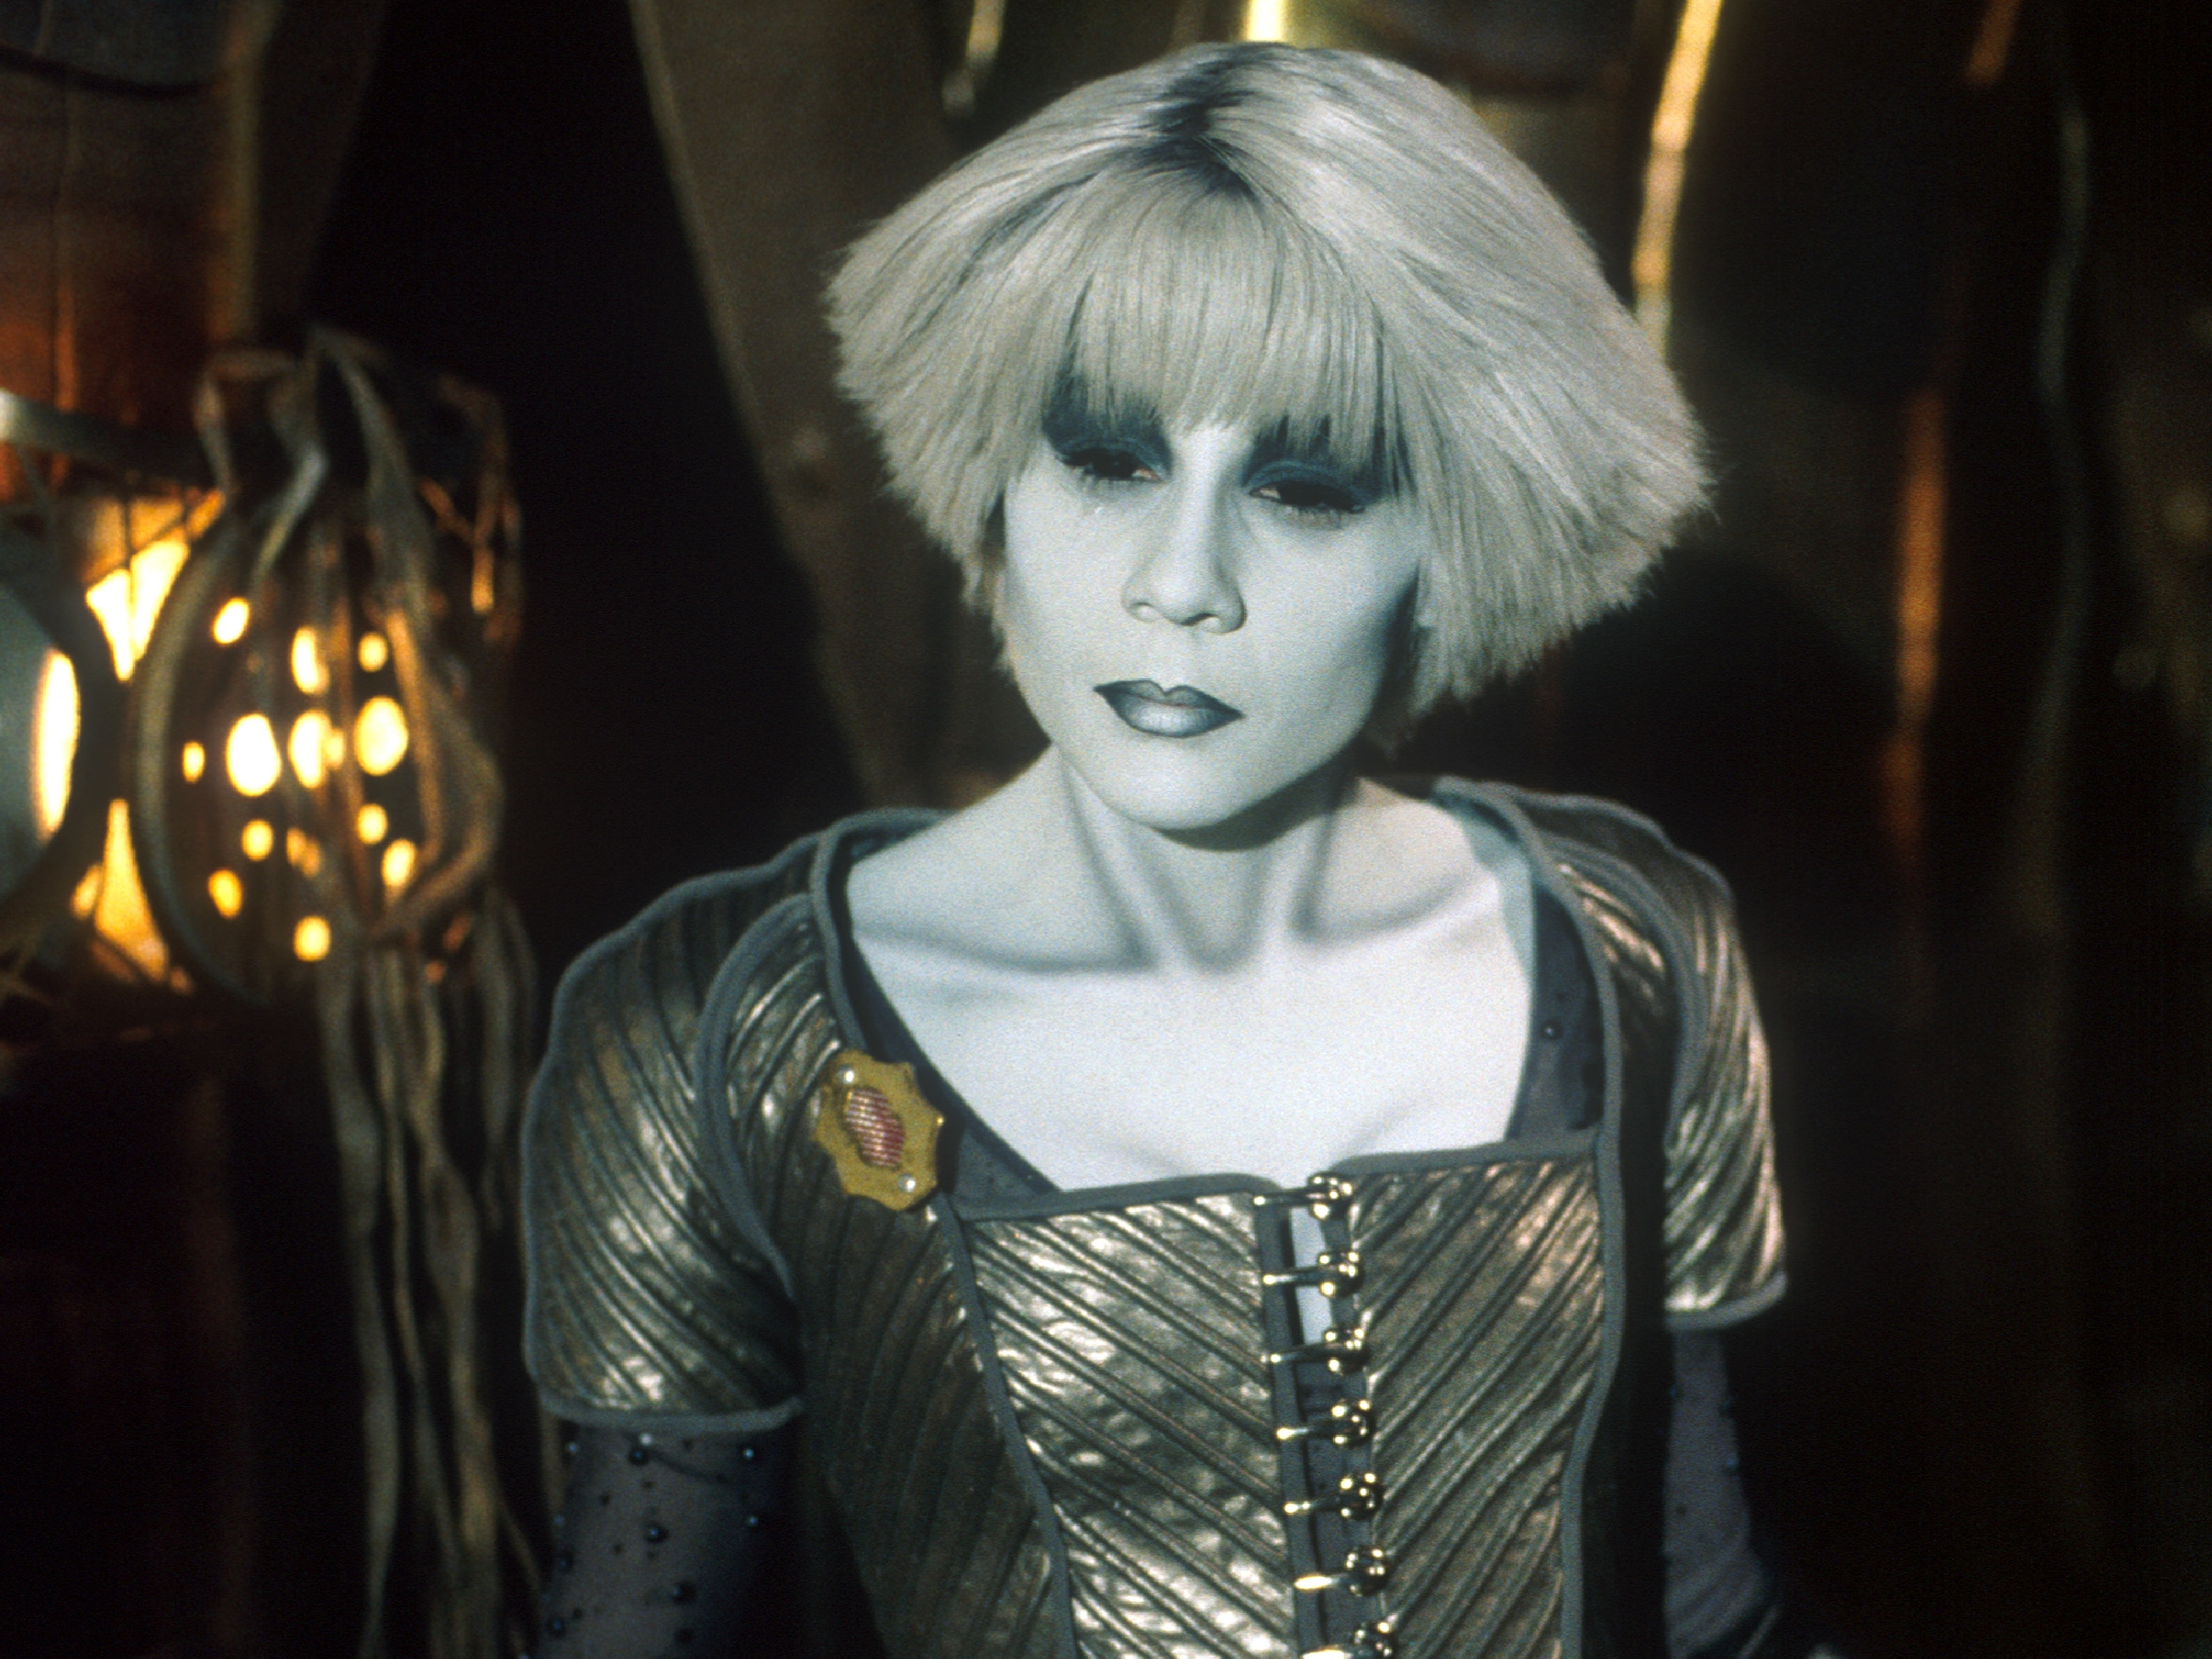 chiana farscape - photo #22